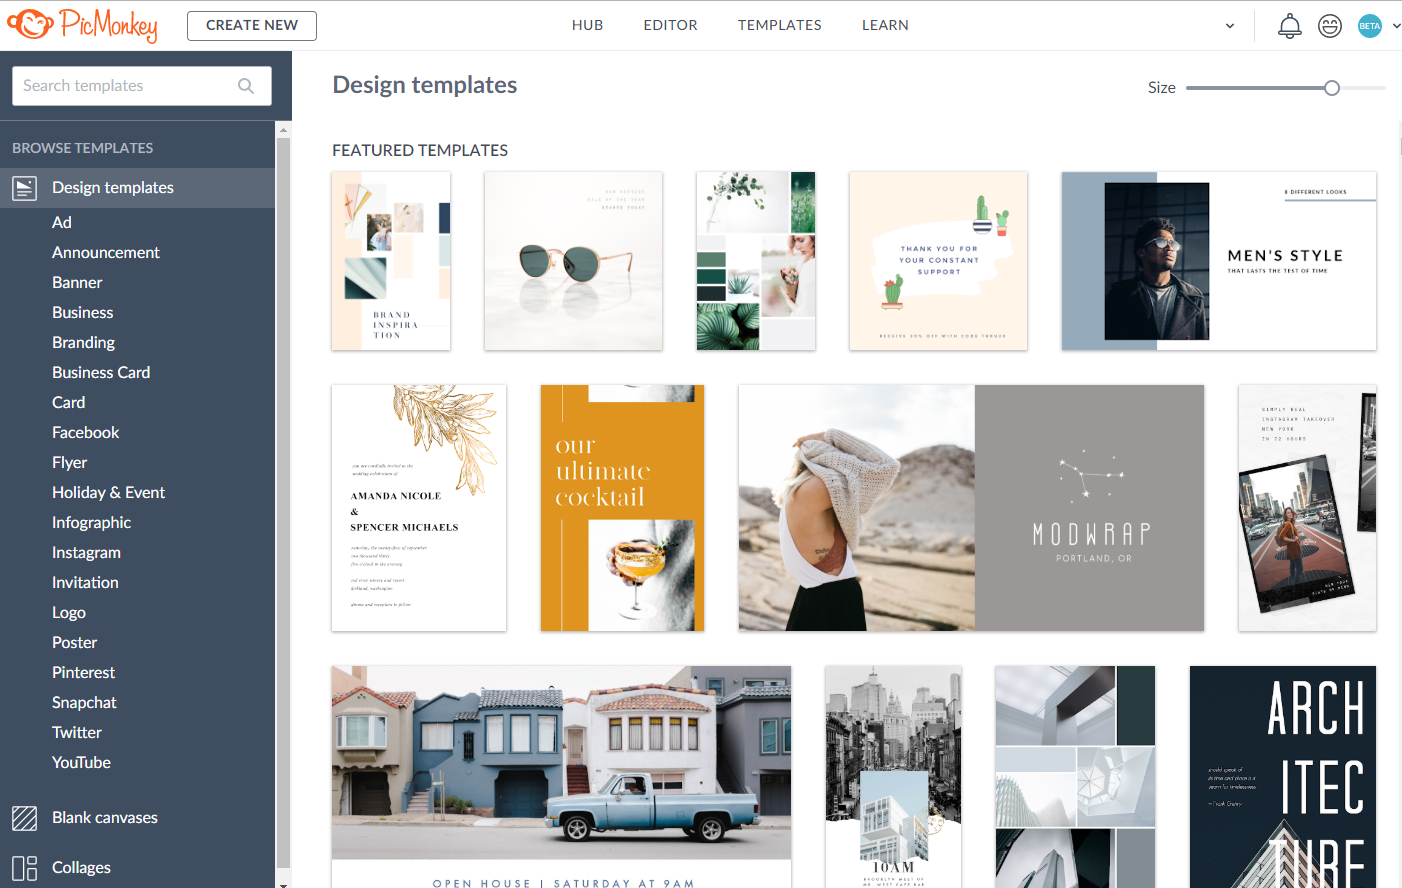 PicMonkey featured design templates